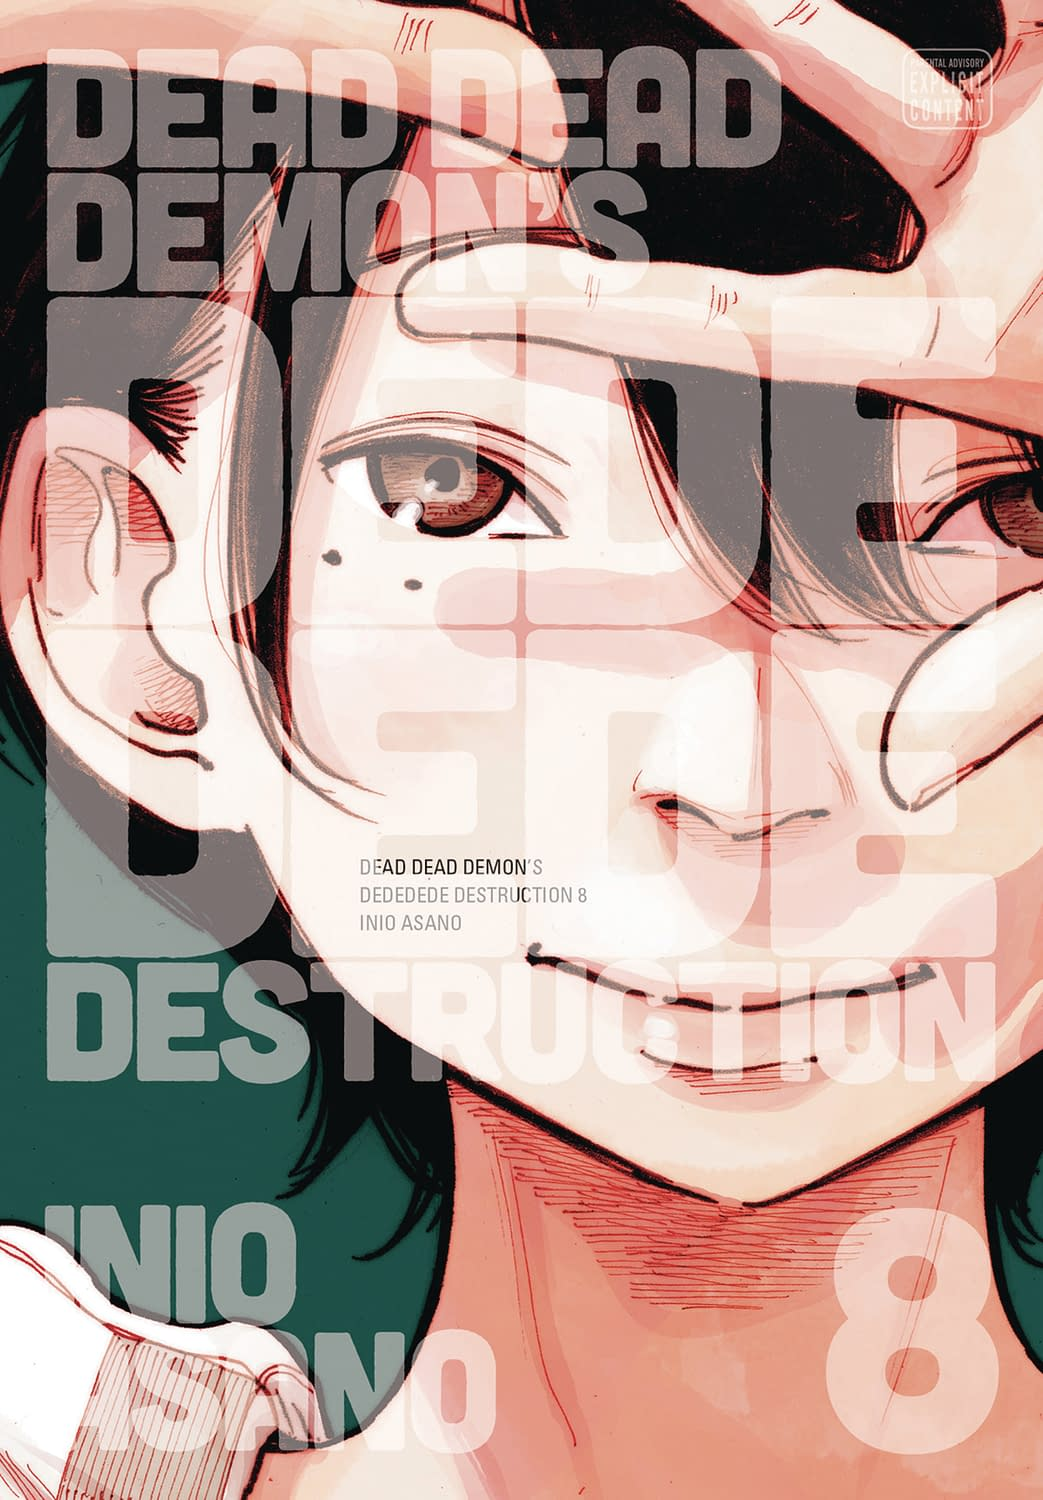 DEAD DEMONS DEDEDEDE DESTRUCTION GN VOL 08 ASANO (MR)